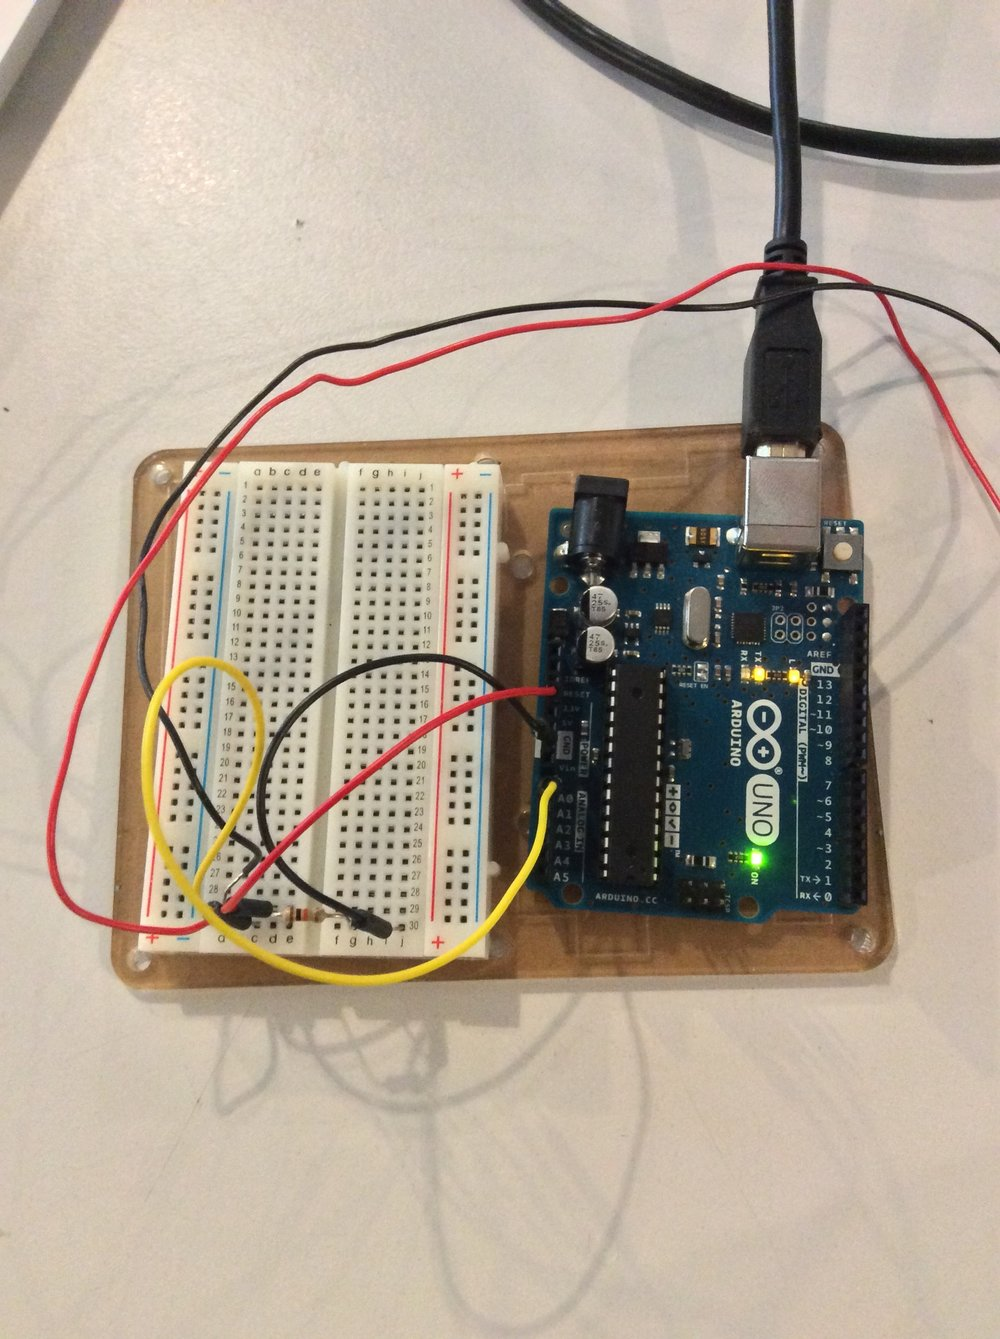 Arduino and Breadboard circuit: Analog Input 0 (yellow wire) , Ground (black wire), 3.3v Power from Arduino (red wire)